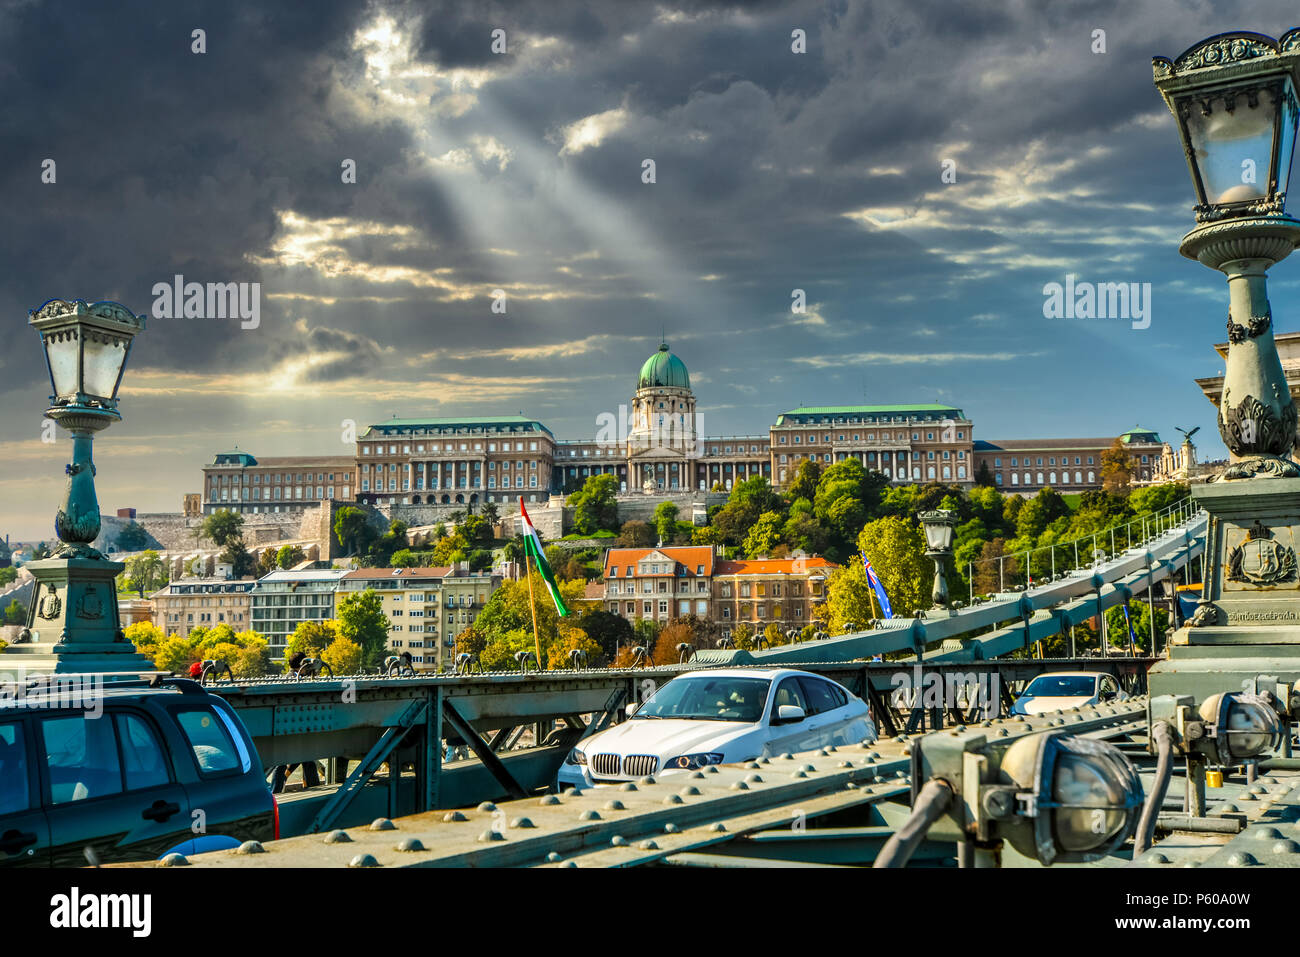 A view of Buda Castle, the Historical Castle And Palace Complex Of The Hungarian Kings from the Chain Bridge in Budapest, Hungary. Stock Photo